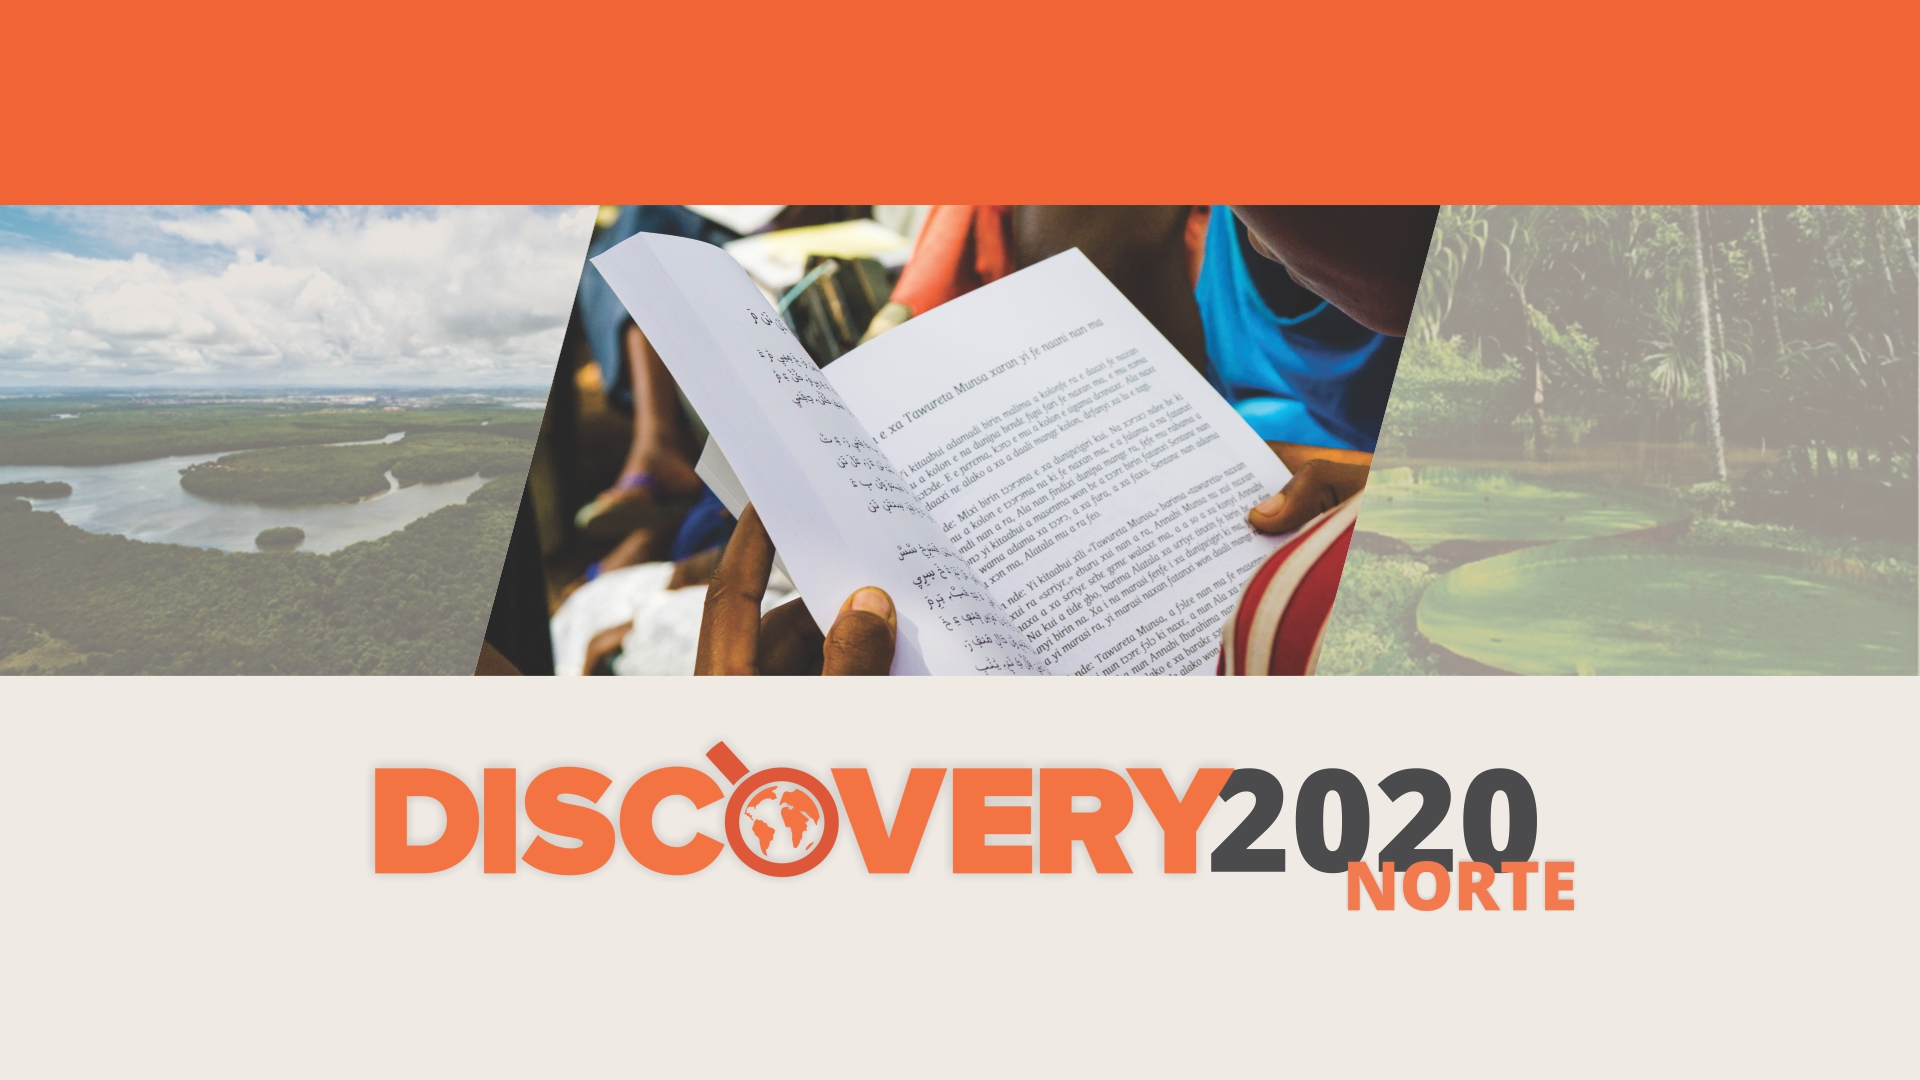 Discovery 2020 Norte